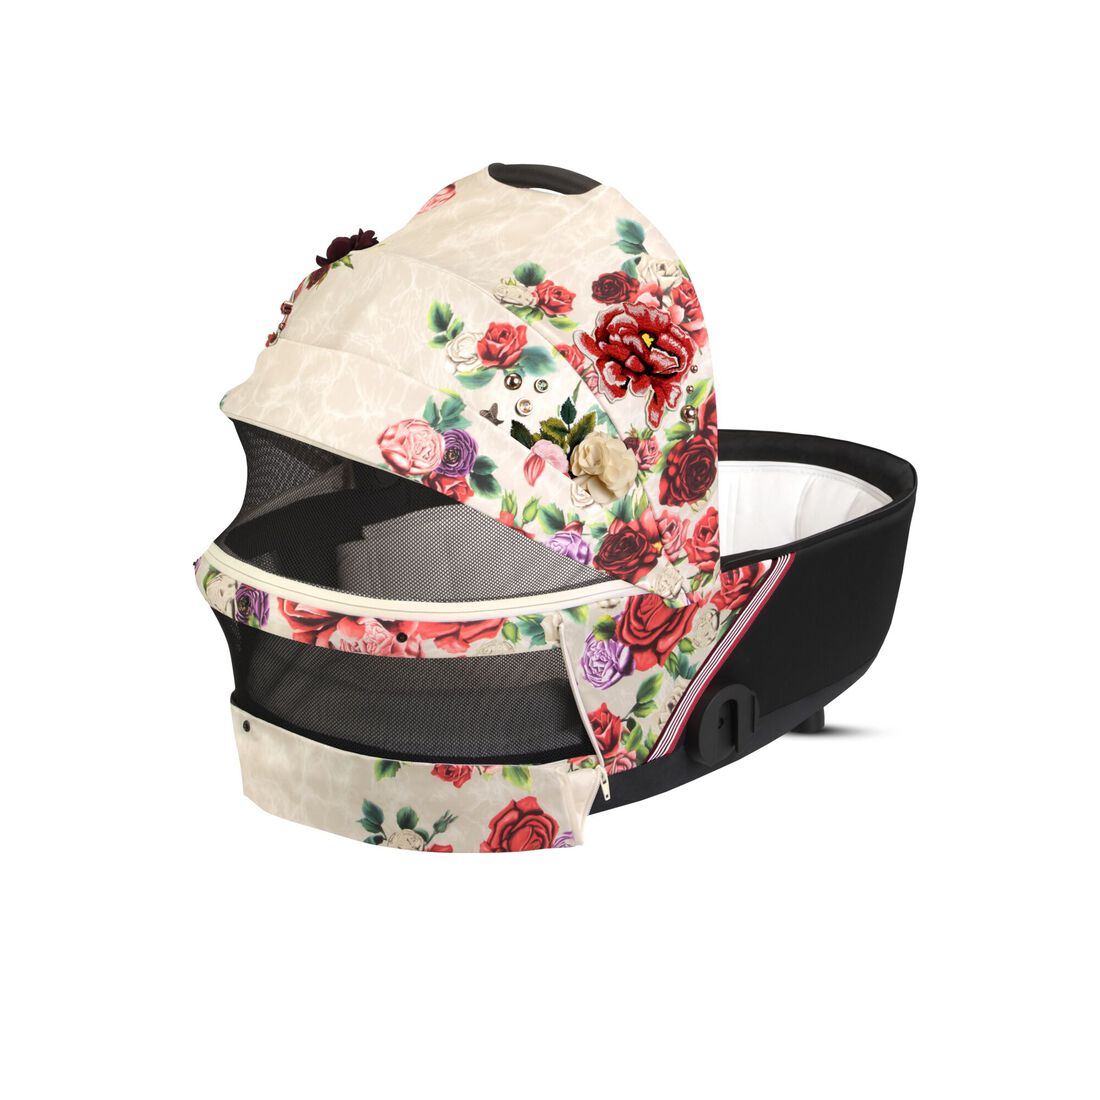 CYBEX Mios Lux Carry Cot - Spring Blossom Light in Spring Blossom Light large image number 3